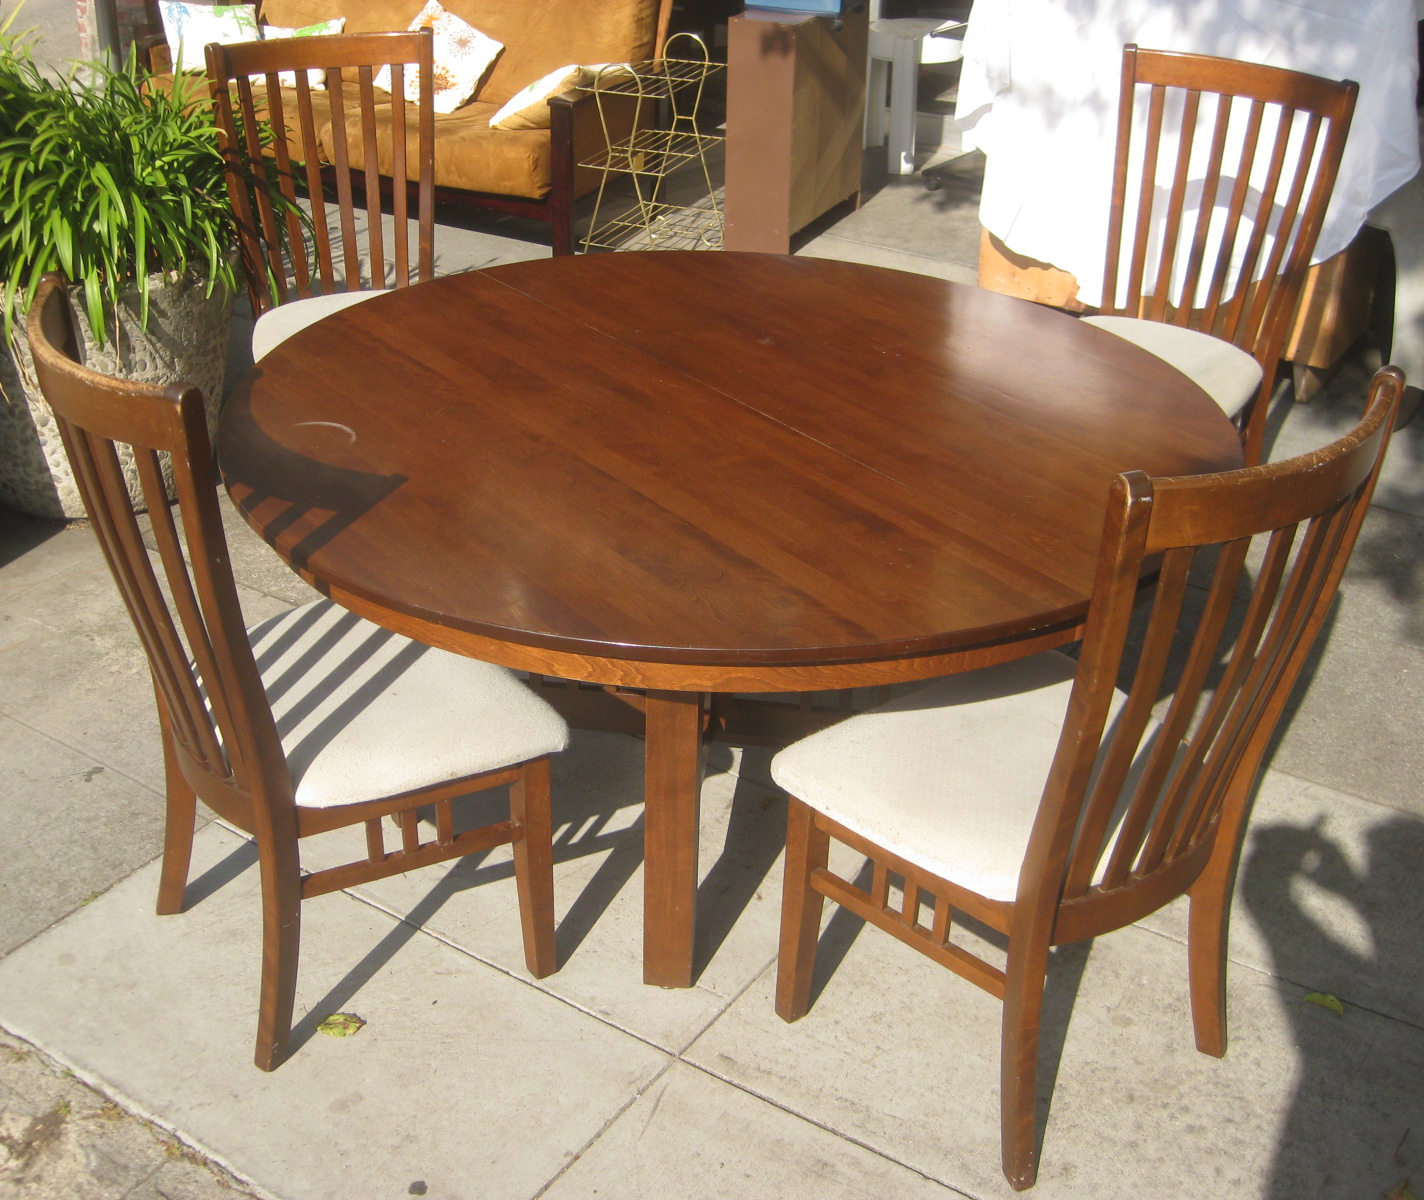 Uhuru furniture collectibles sold round dining table for Round dining table for 4